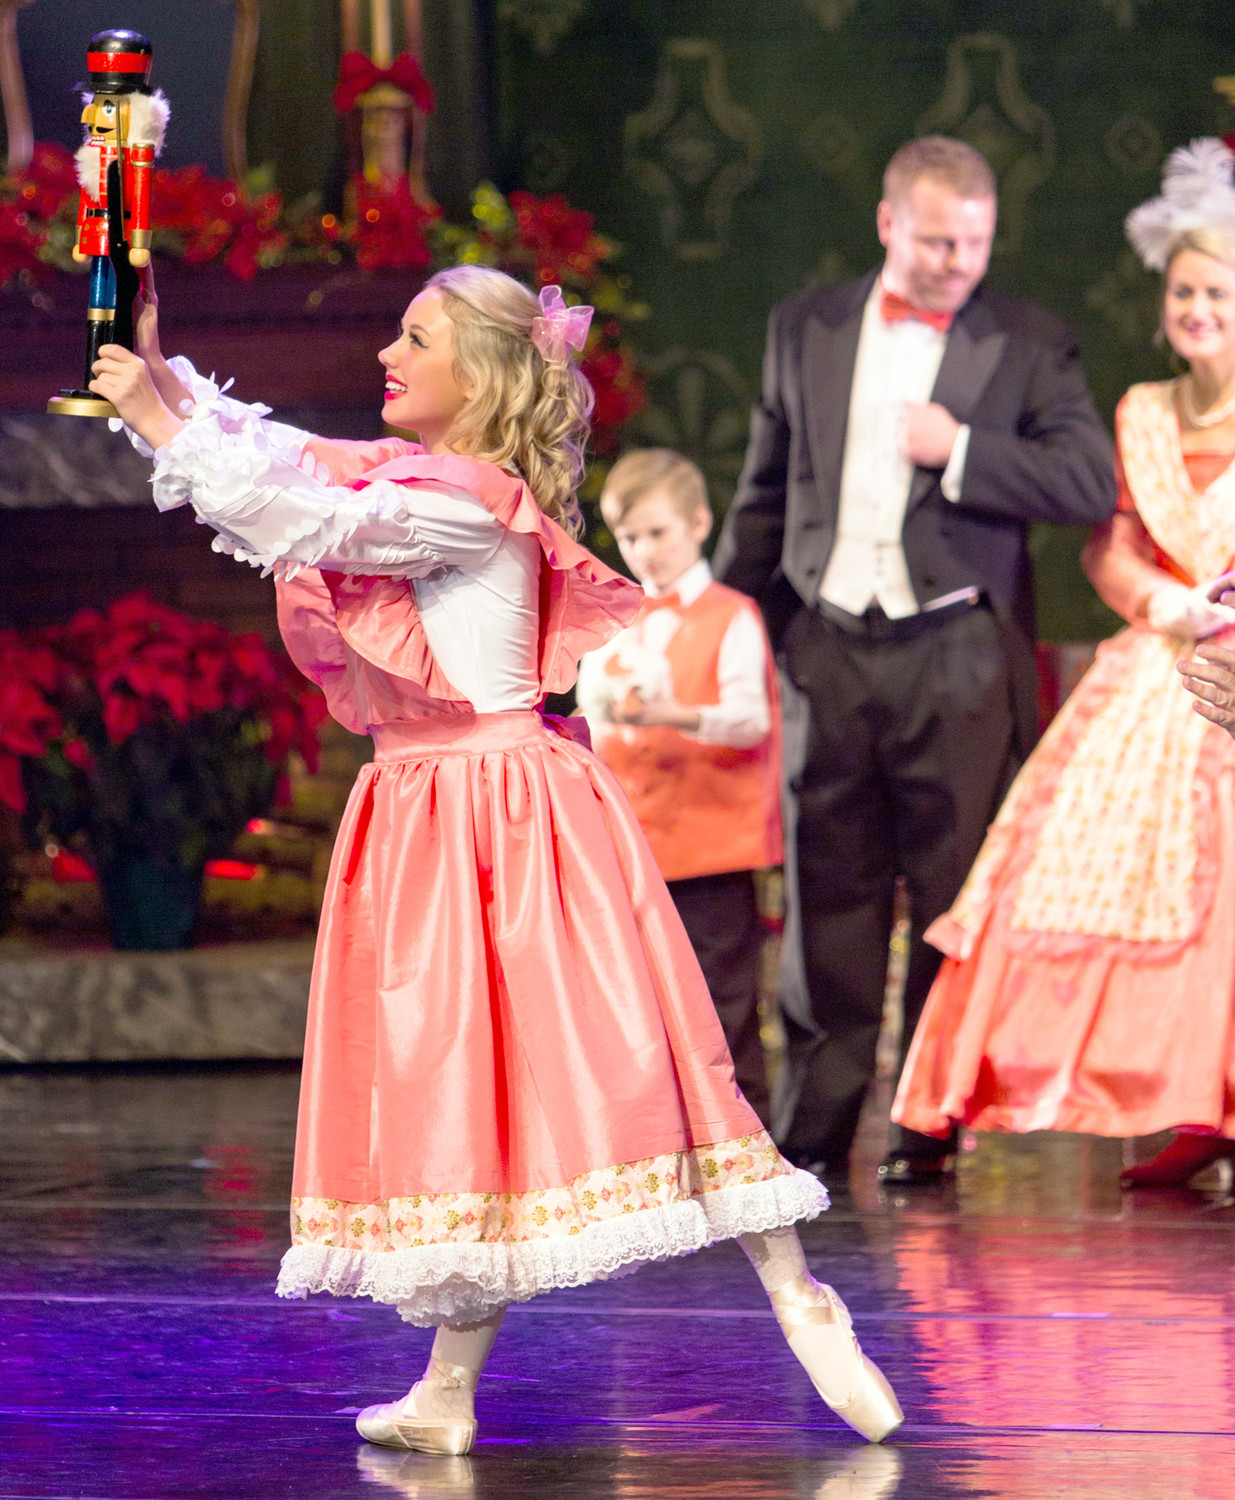 CLARA (Maddie Robinson) twirls through her parents' Christmas party, where she receives a magical Nutcracker doll from her godfather, Herr Drosselmeyer. In the background, Clara's parents (Jason and Faith Robinson) and her menacing brother, Fritz (Zachary Kline) watch the excitement closely.